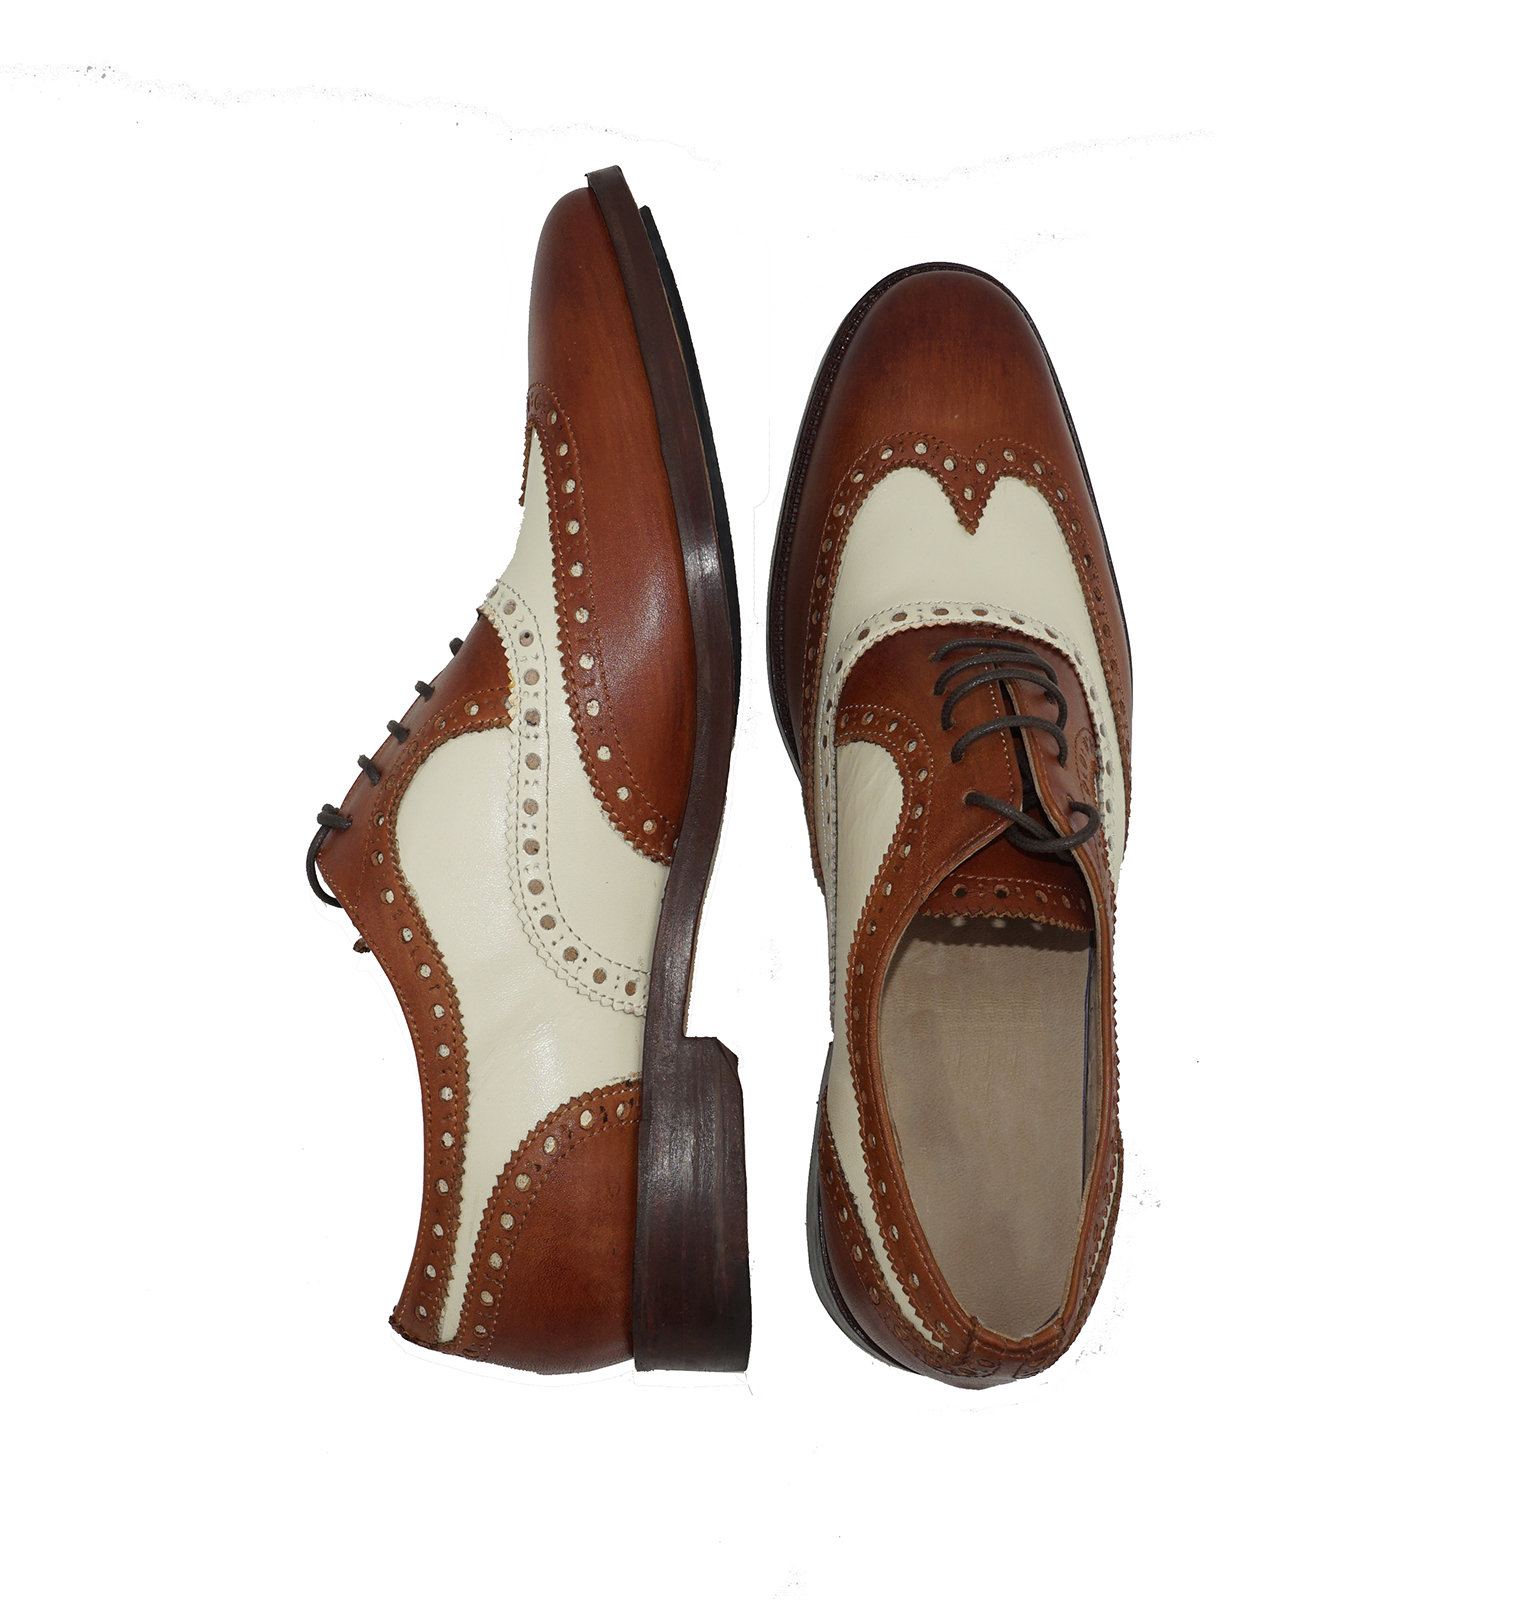 Extravagantly White Beige Light Tan Brown Contrast Brogues Wingtip Oxford Leather Shoes